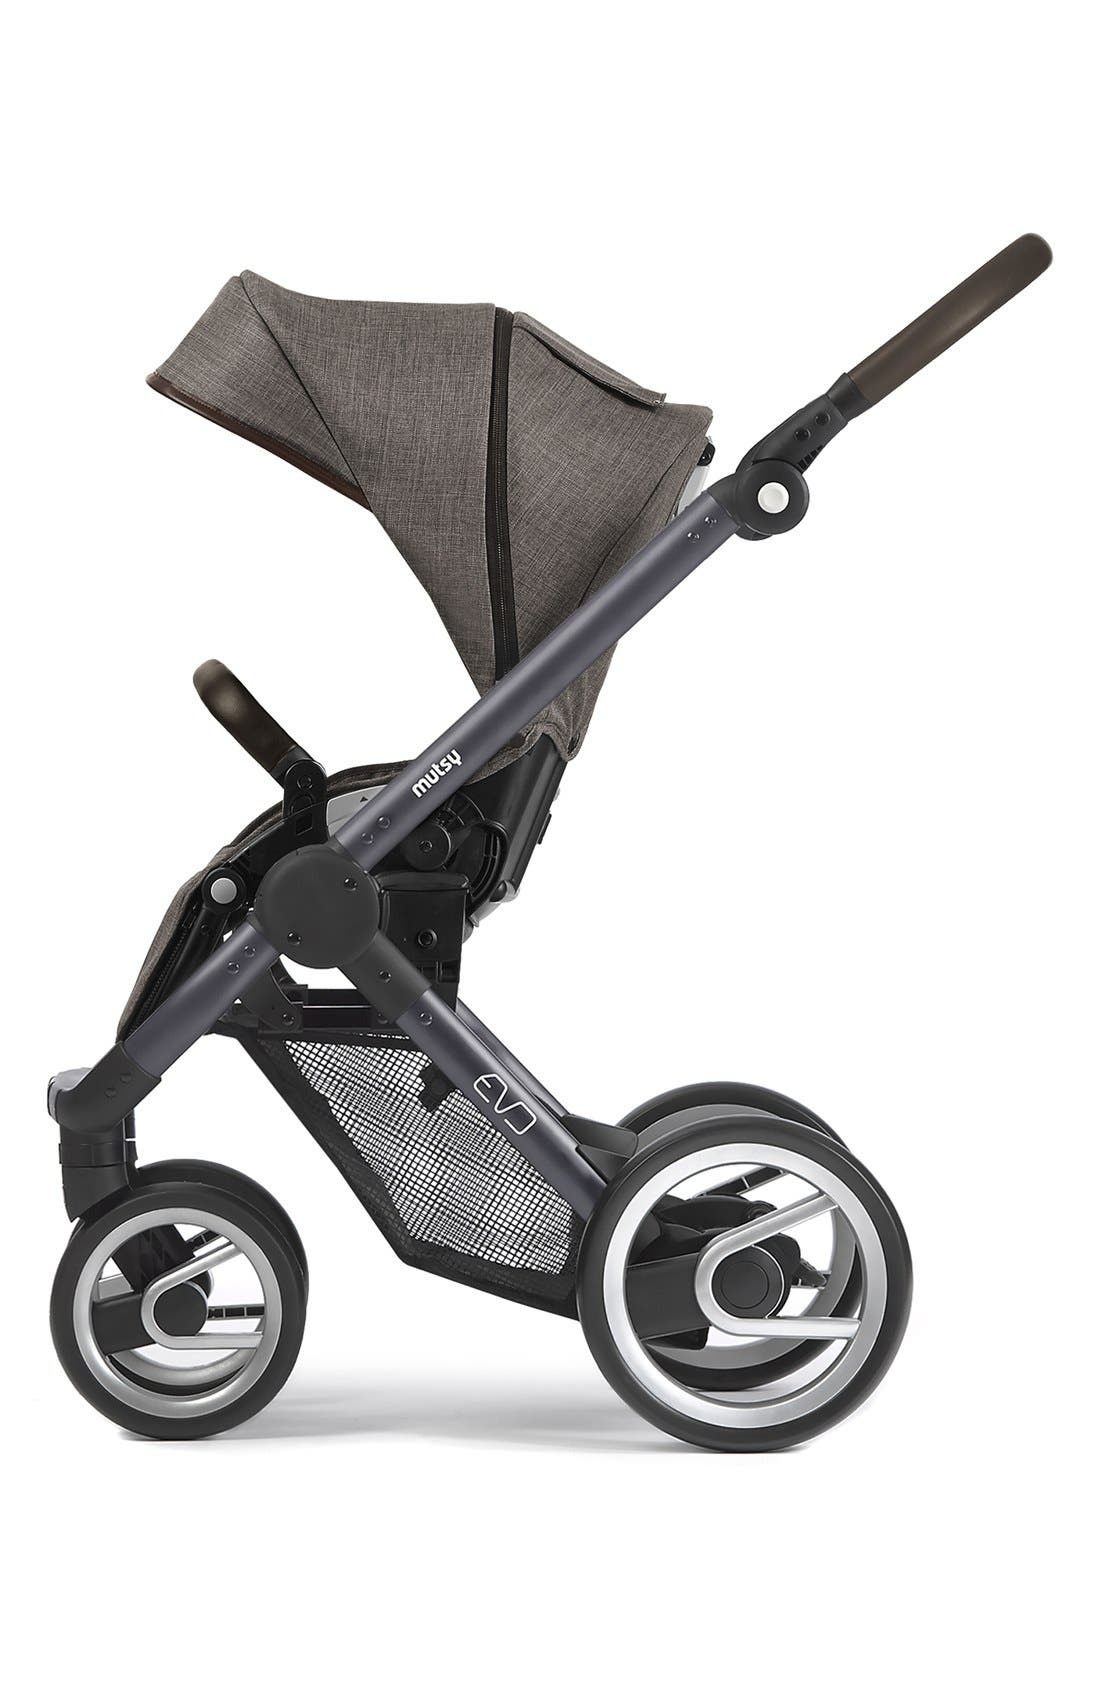 Evo - Farmer Earth Stroller,                             Main thumbnail 1, color,                             Brown/ Dark Grey